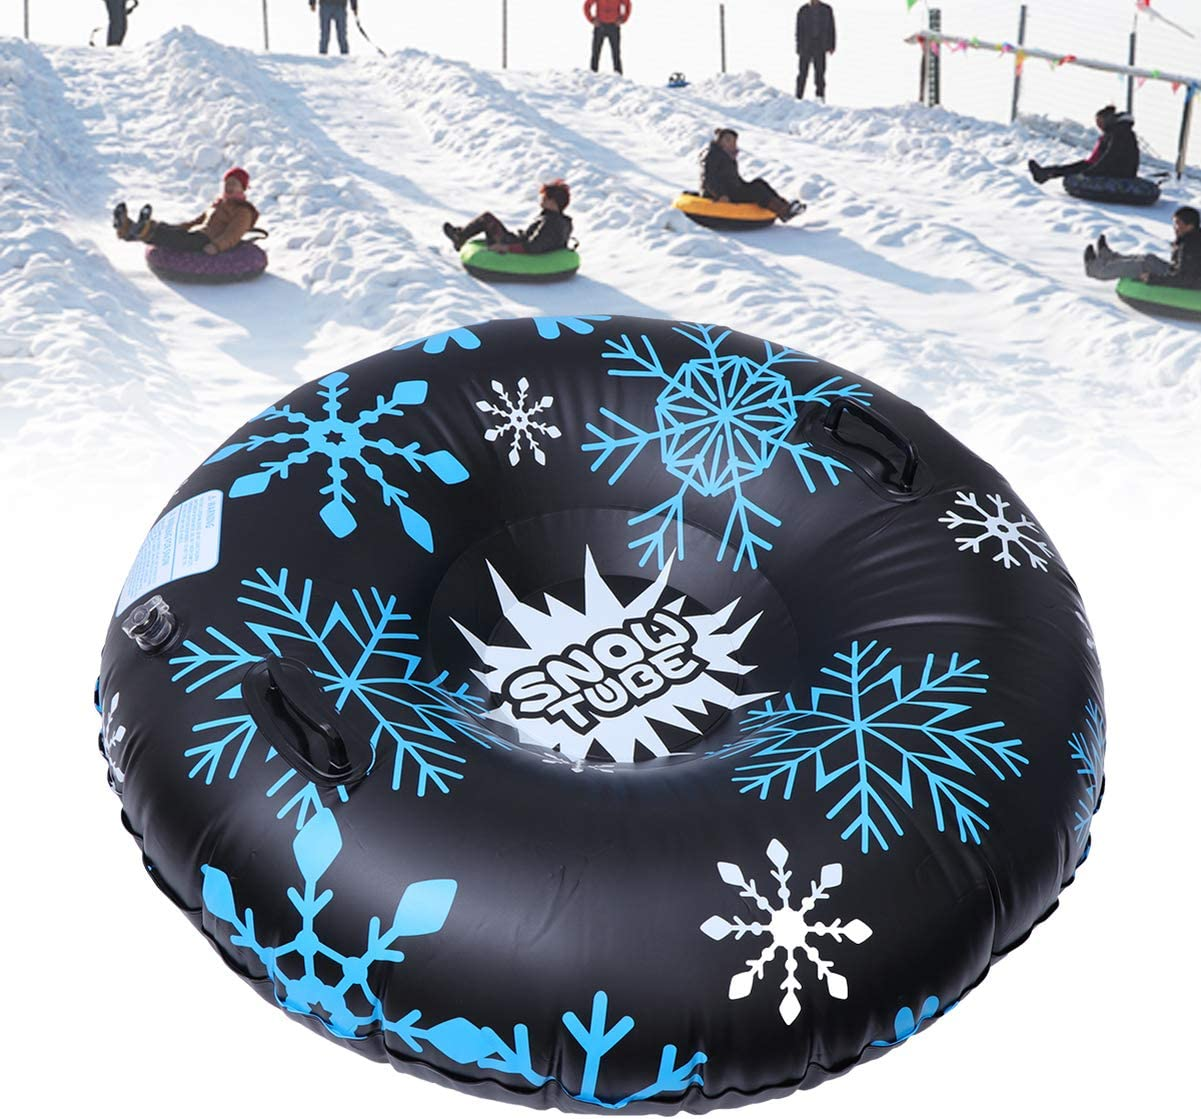 Flexible Flyer Inflatable Snow Tube 1-2 Person Double Sled for Kids /& Adults Sledding